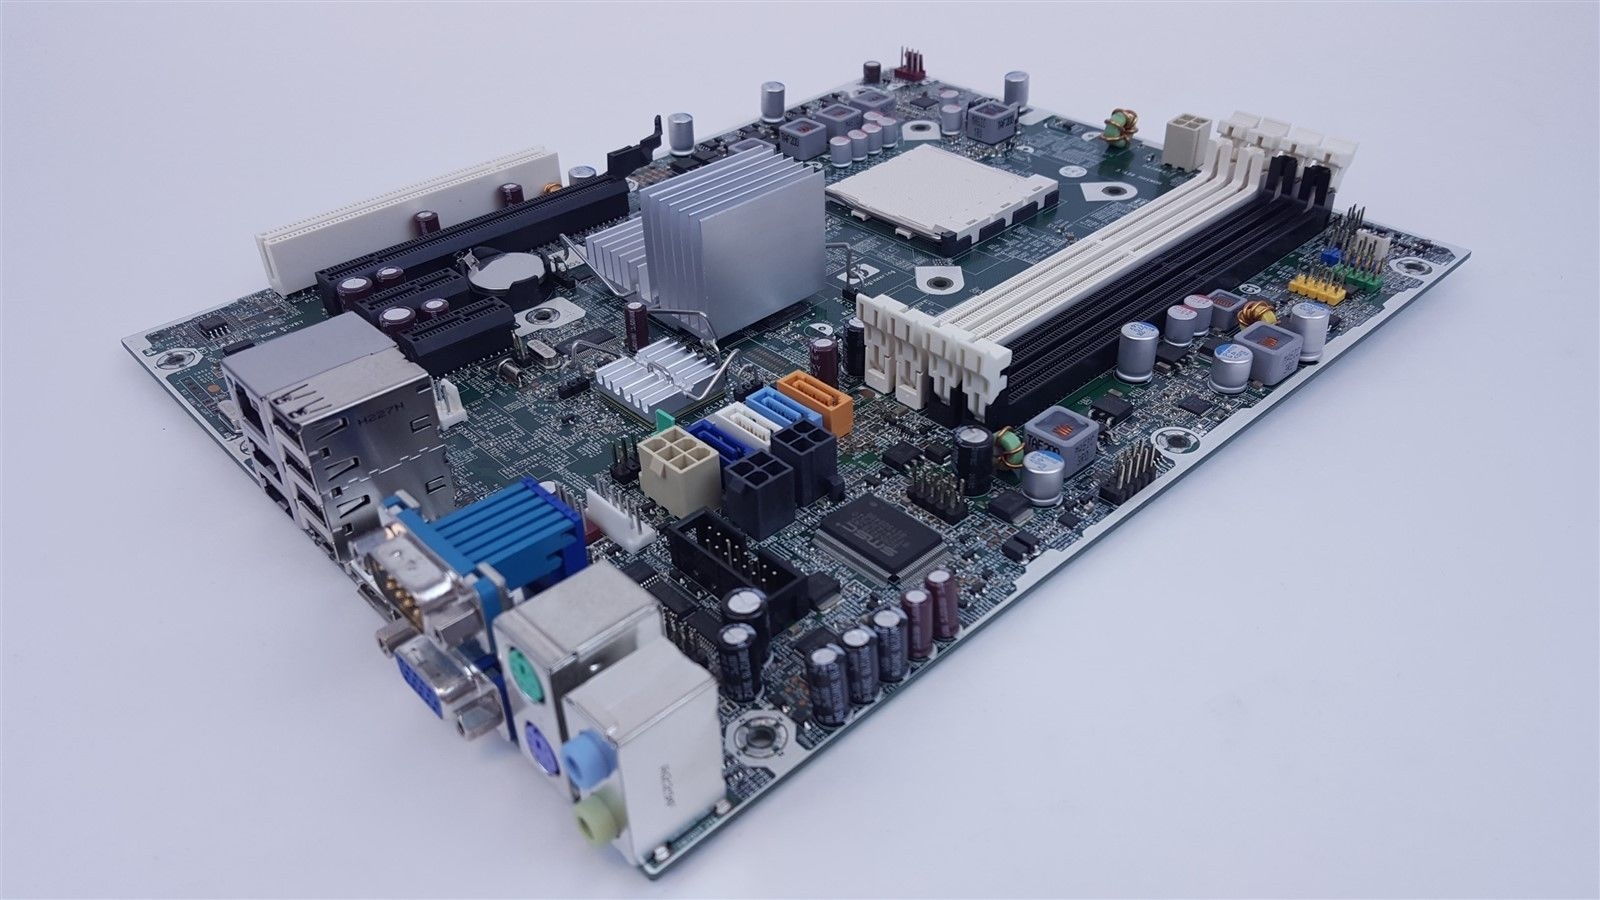 HP  6005 Pro SFF Microtower Socket AM3 Motherboard 503335-001 531966-001